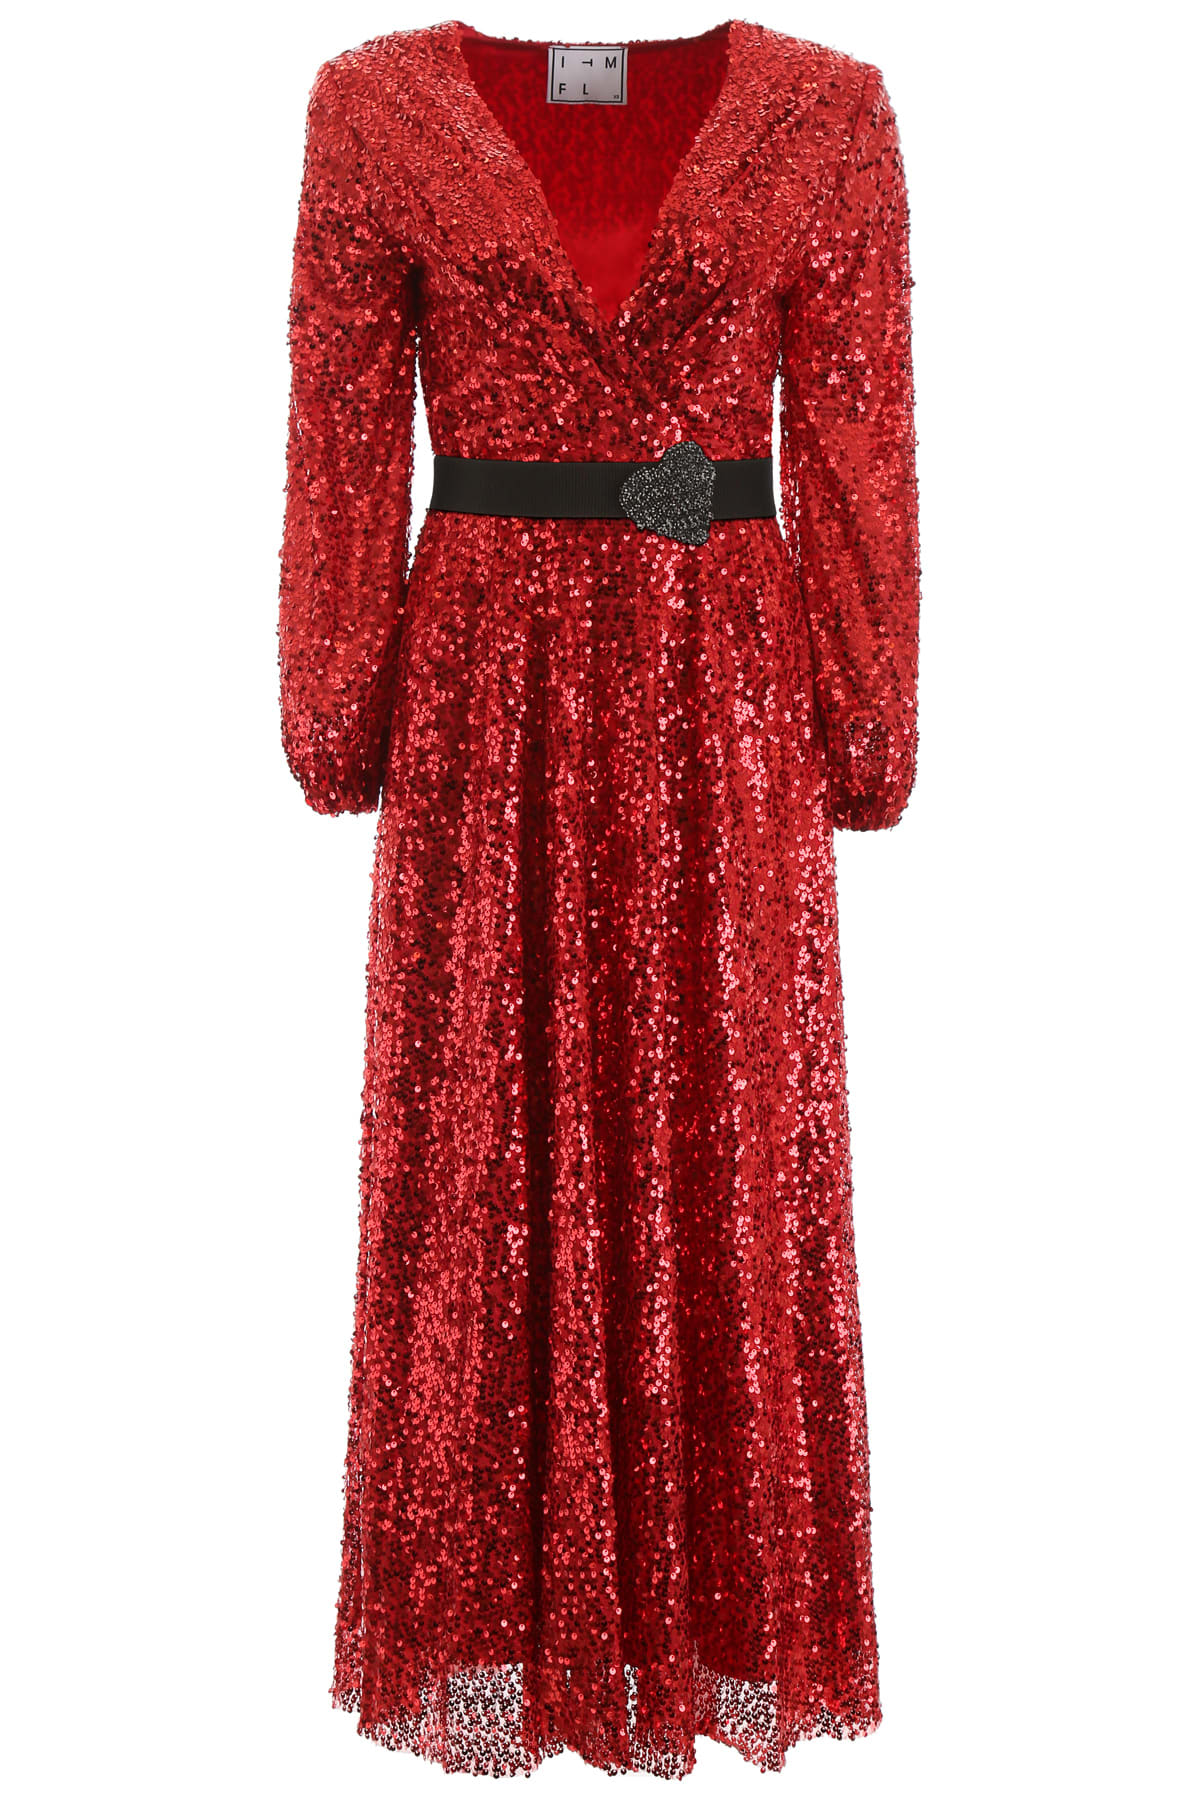 In The Mood For Love Cher Dress